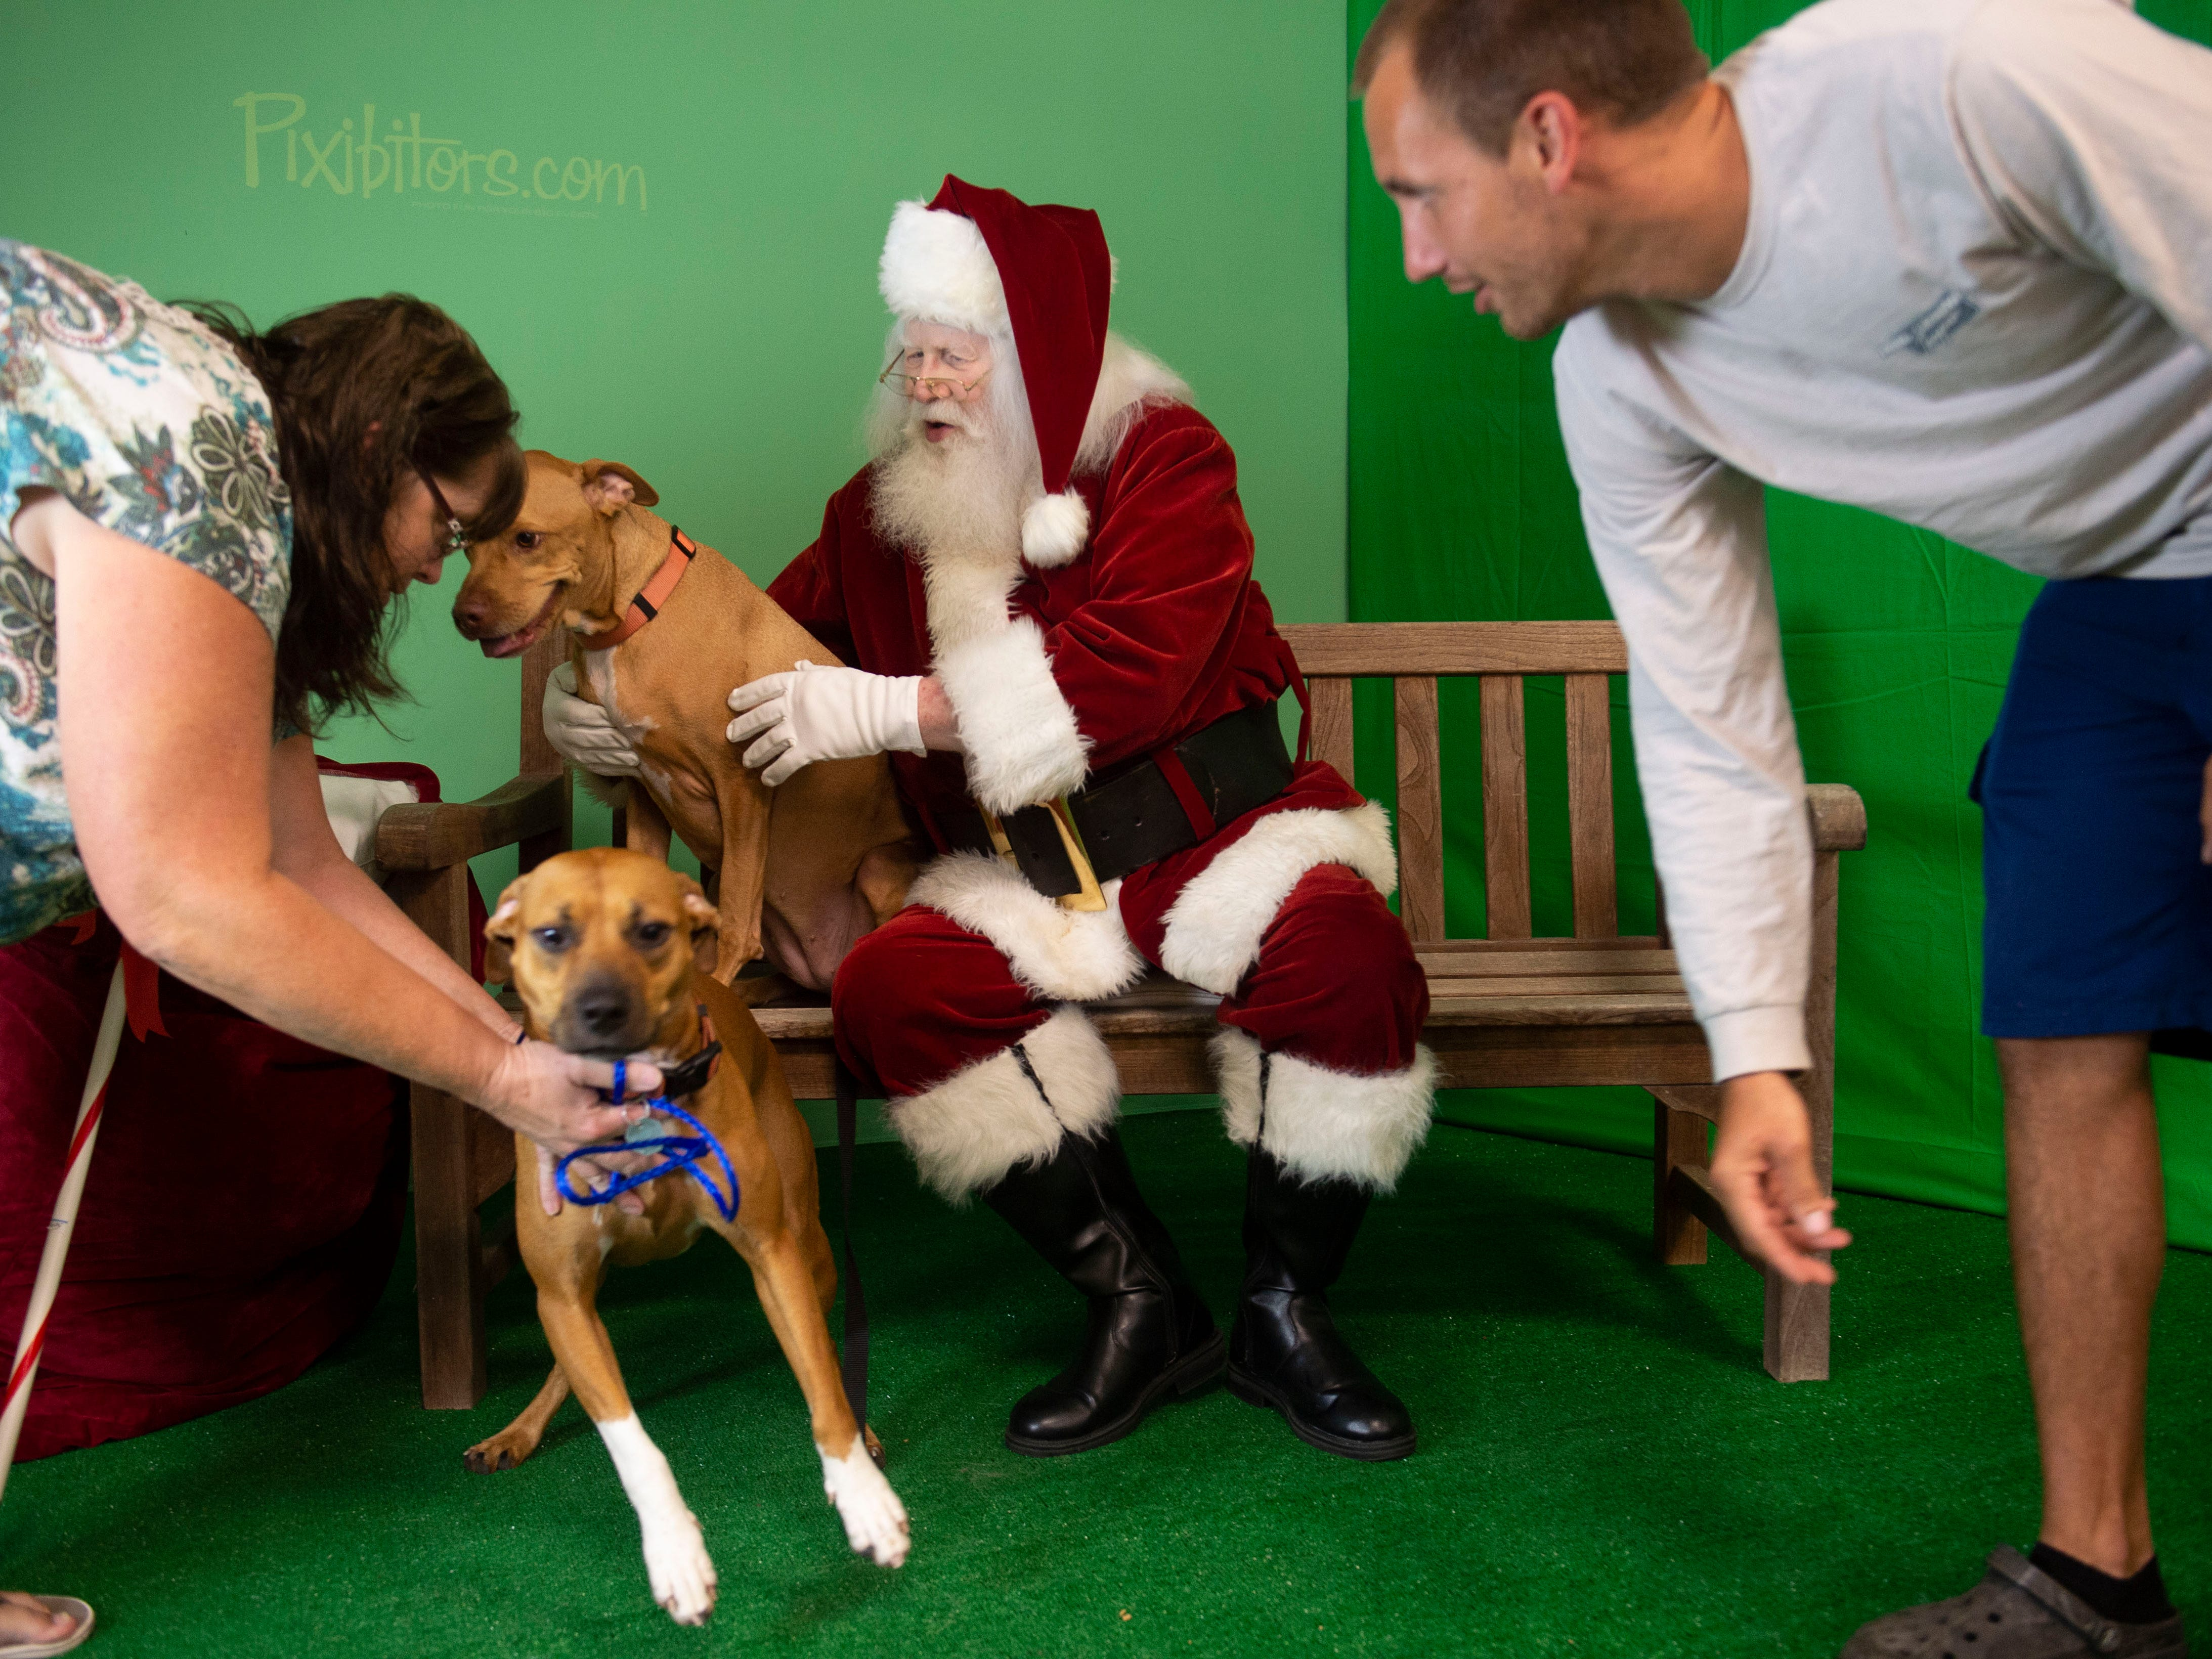 "Cheryl Selig and Brandon Selig, both of Vero Beach, try to get dogs Bella (left) and Sasha, to pose for a portrait with Lance Willock, dressed as Santa Claus, during the Humane Society of Vero Beach and Indian River County's annual Santa Paws photo shoot Sunday, Nov. 4, 2018 at the Humane Society Thrift Store in Vero Beach. Willock is used to meeting children during the holiday season, but enjoys greeting the animals and helping out with the fundraiser. ""They're different than children but they all have personalities. Once they get acquainted with Santa it's interesting to see how they all react to Santa, almost like children somewhat,"" Willock said."